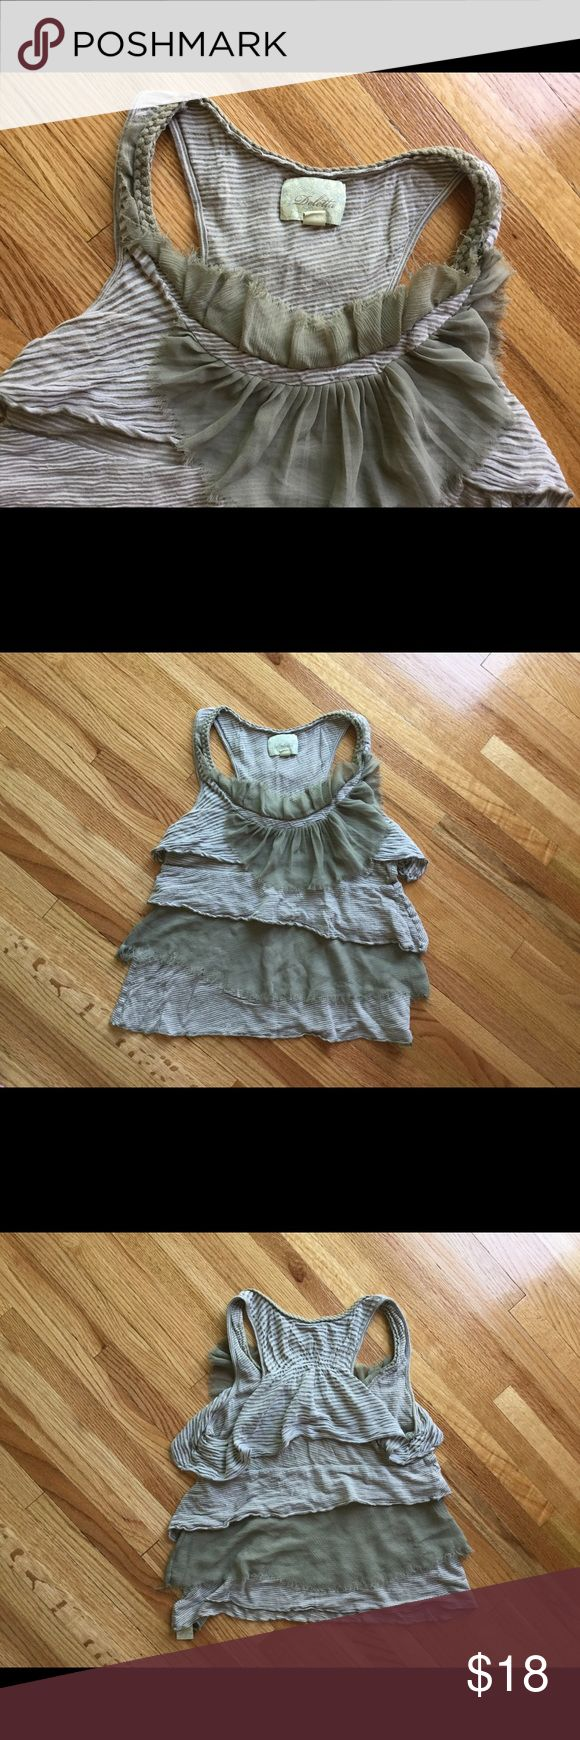 Anthropologie brand tank top Deletta is the brand. Fun material throughout the front and back. Color is accurate. Size medium. Anthropologie Tops